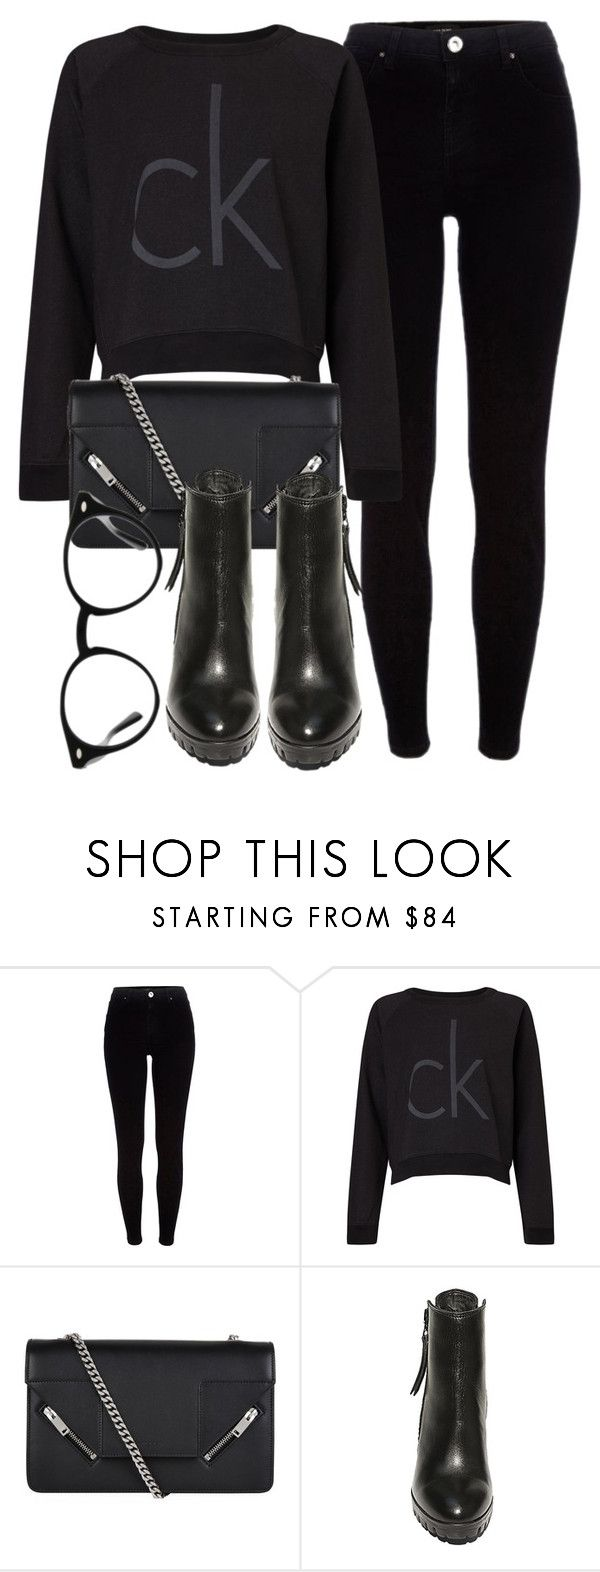 """Untitled #5664"" by laurenmboot ❤ liked on Polyvore featuring River Island, Calvin Klein, Yves Saint Laurent, Steve Madden and Ray-Ban"